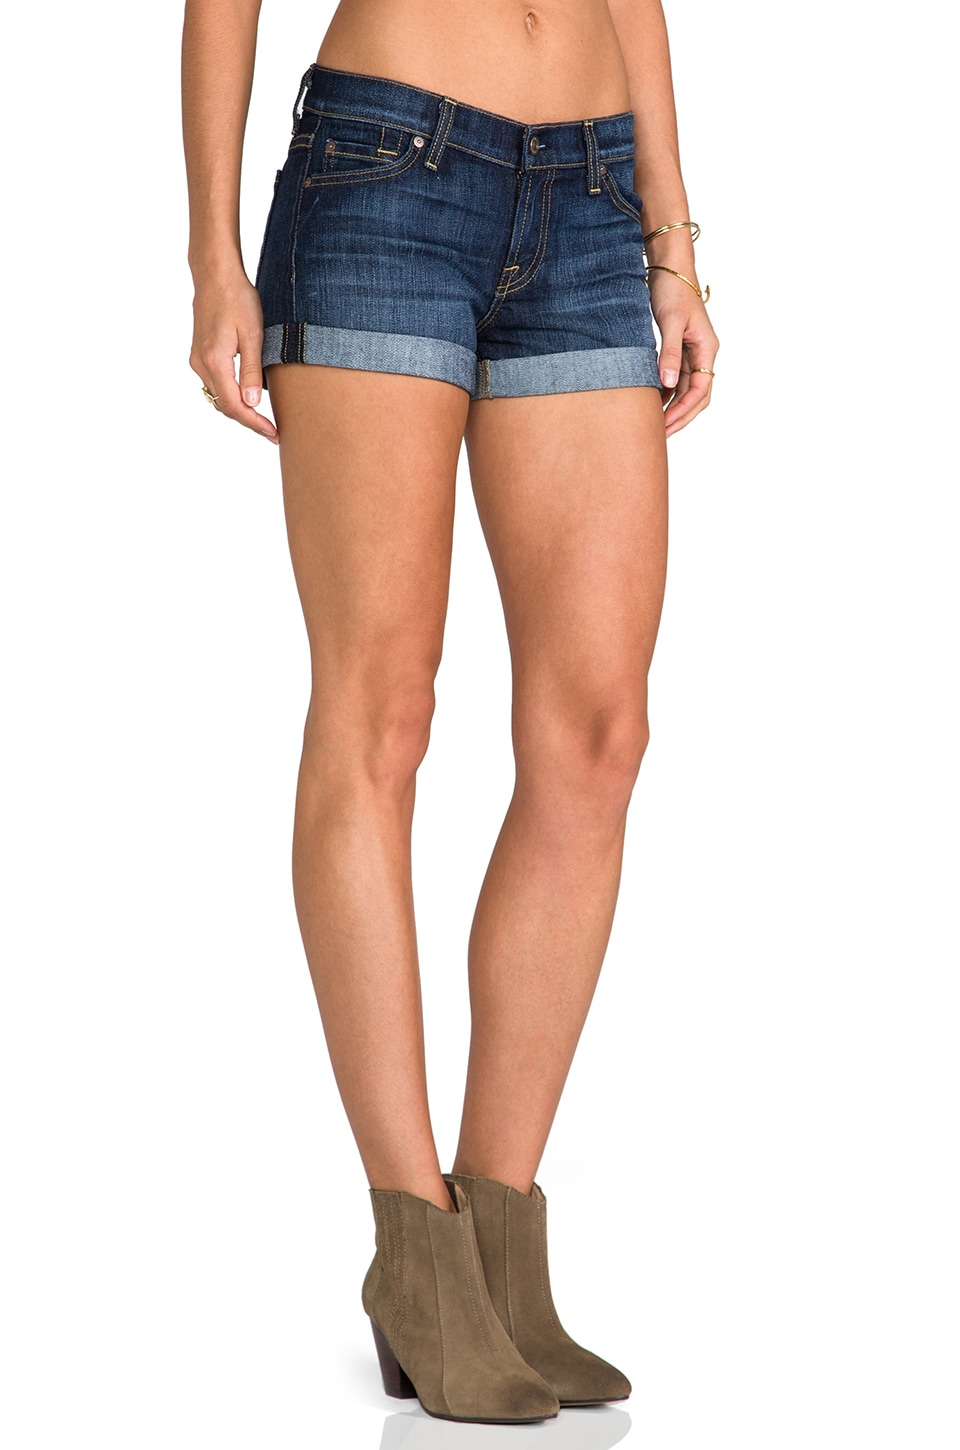 7 For All Mankind Roll Up Short in Nouveau New York Dark